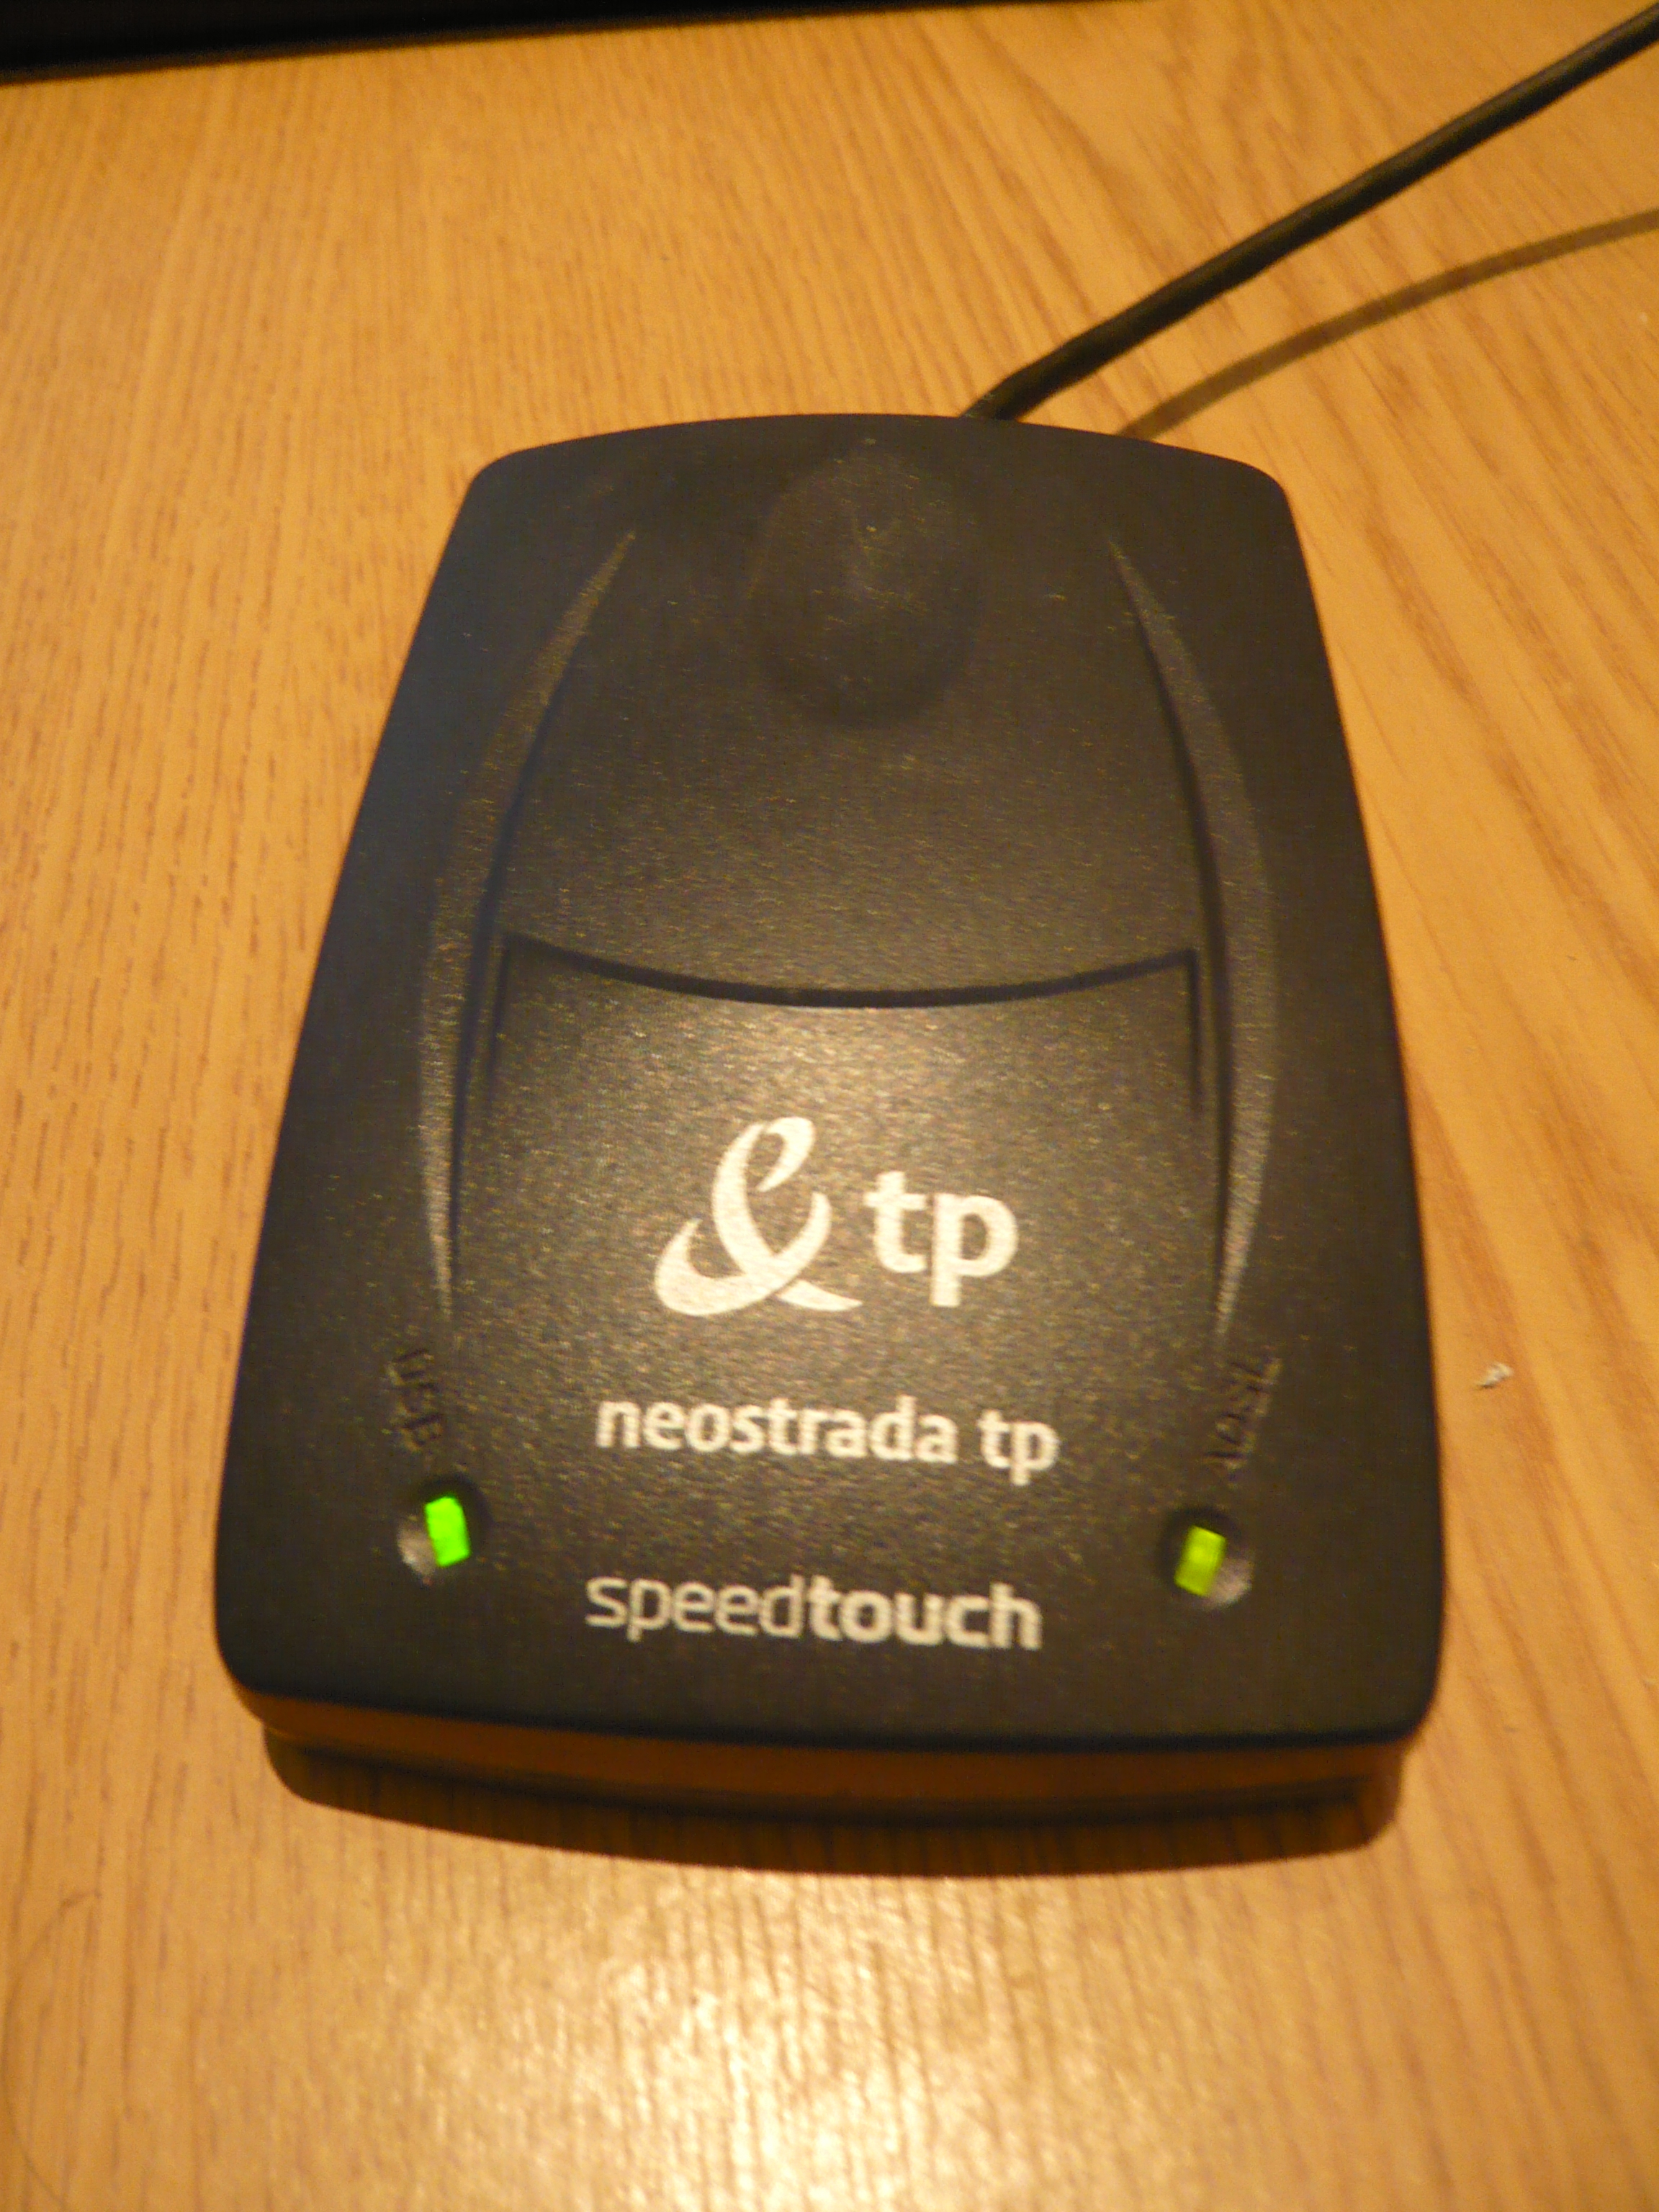 Download Drivers: Alcatel SpeedTouch 330 USB Modem